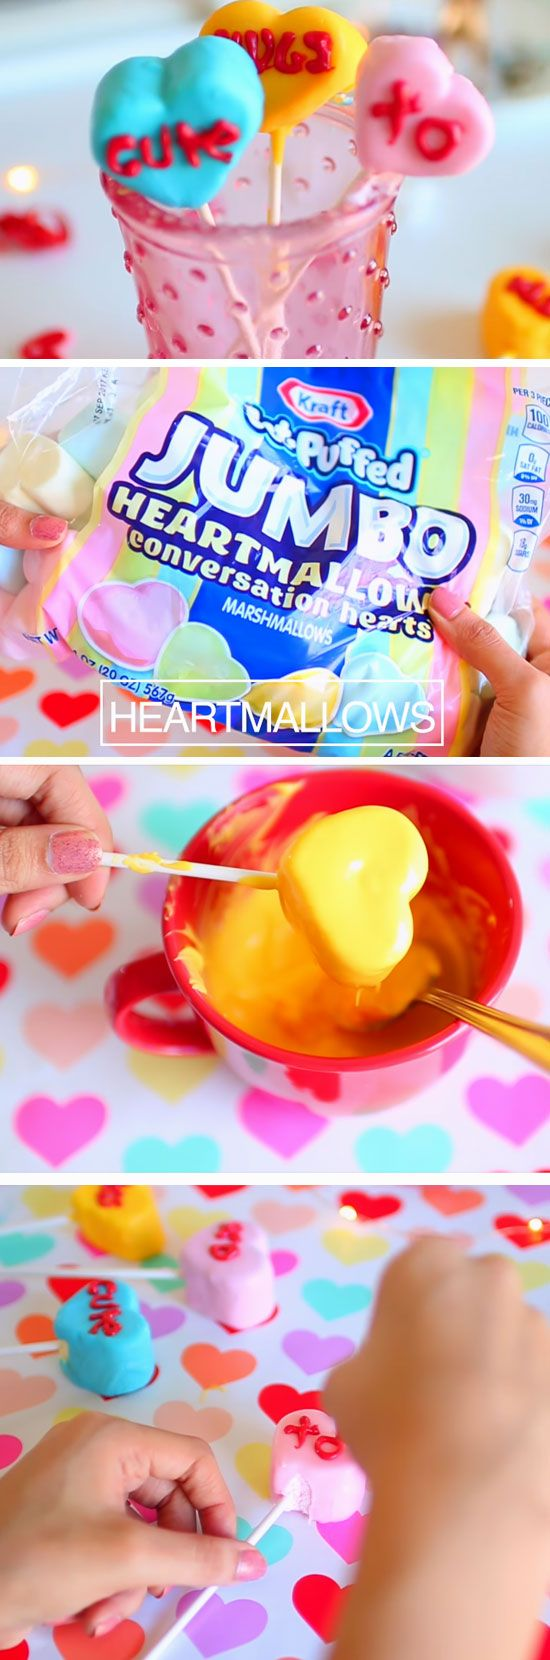 Conversation Heart Pops | DIY Valentines Day Gifts for Him | Cheap Valentines Ideas for Boyfriends